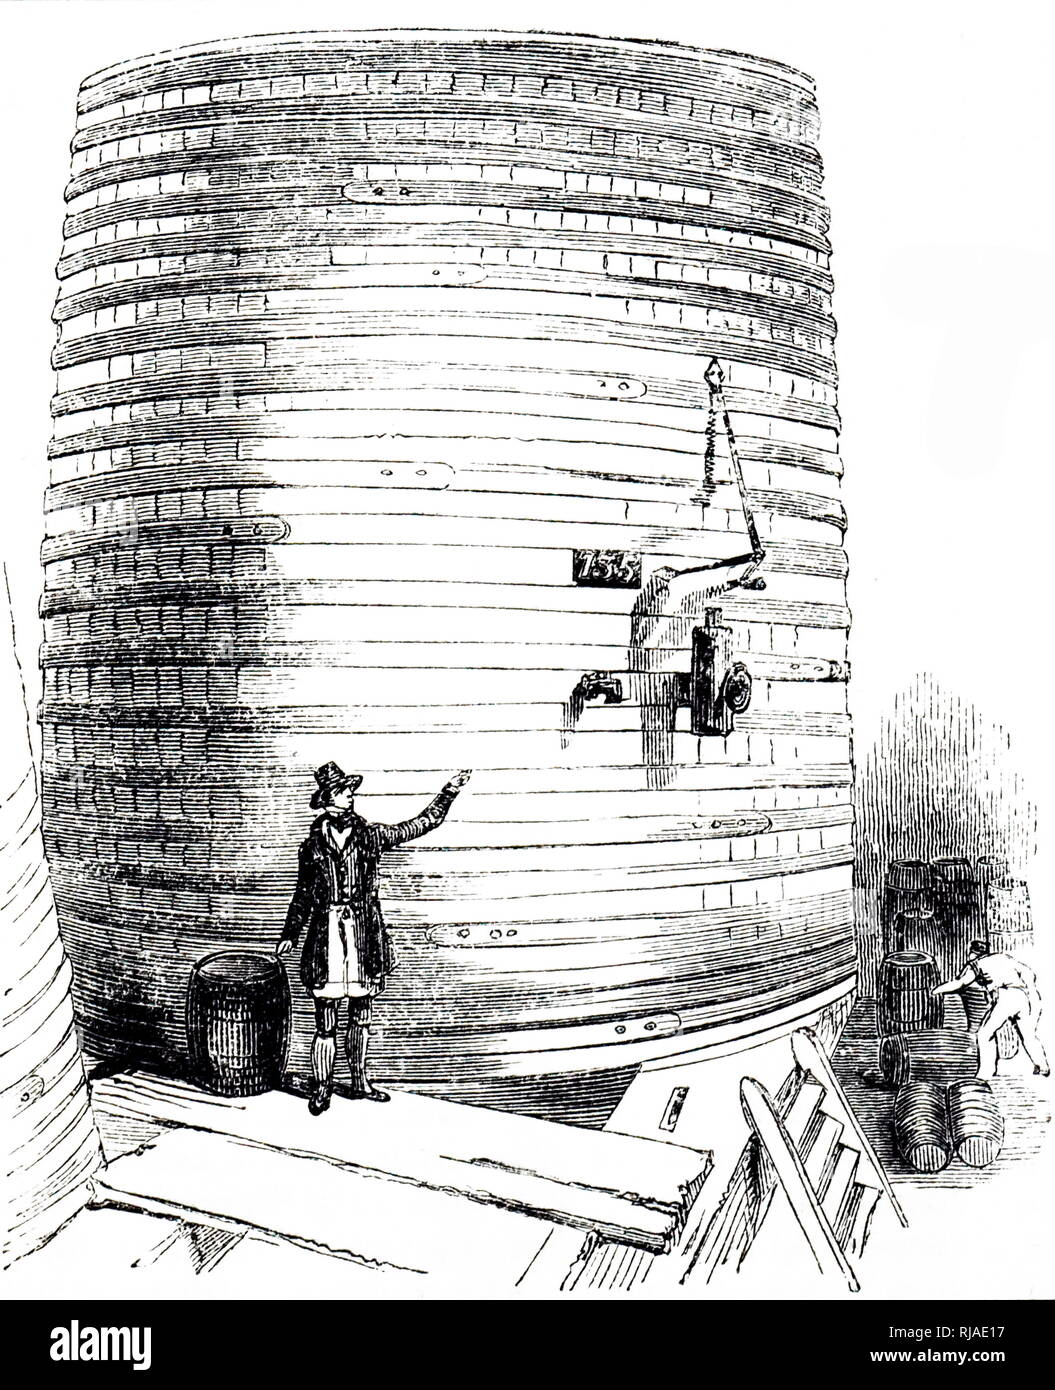 An engraving depicting fermenting vessels in which cool beer or wort fermented with yeast. Dated 19th century - Stock Image